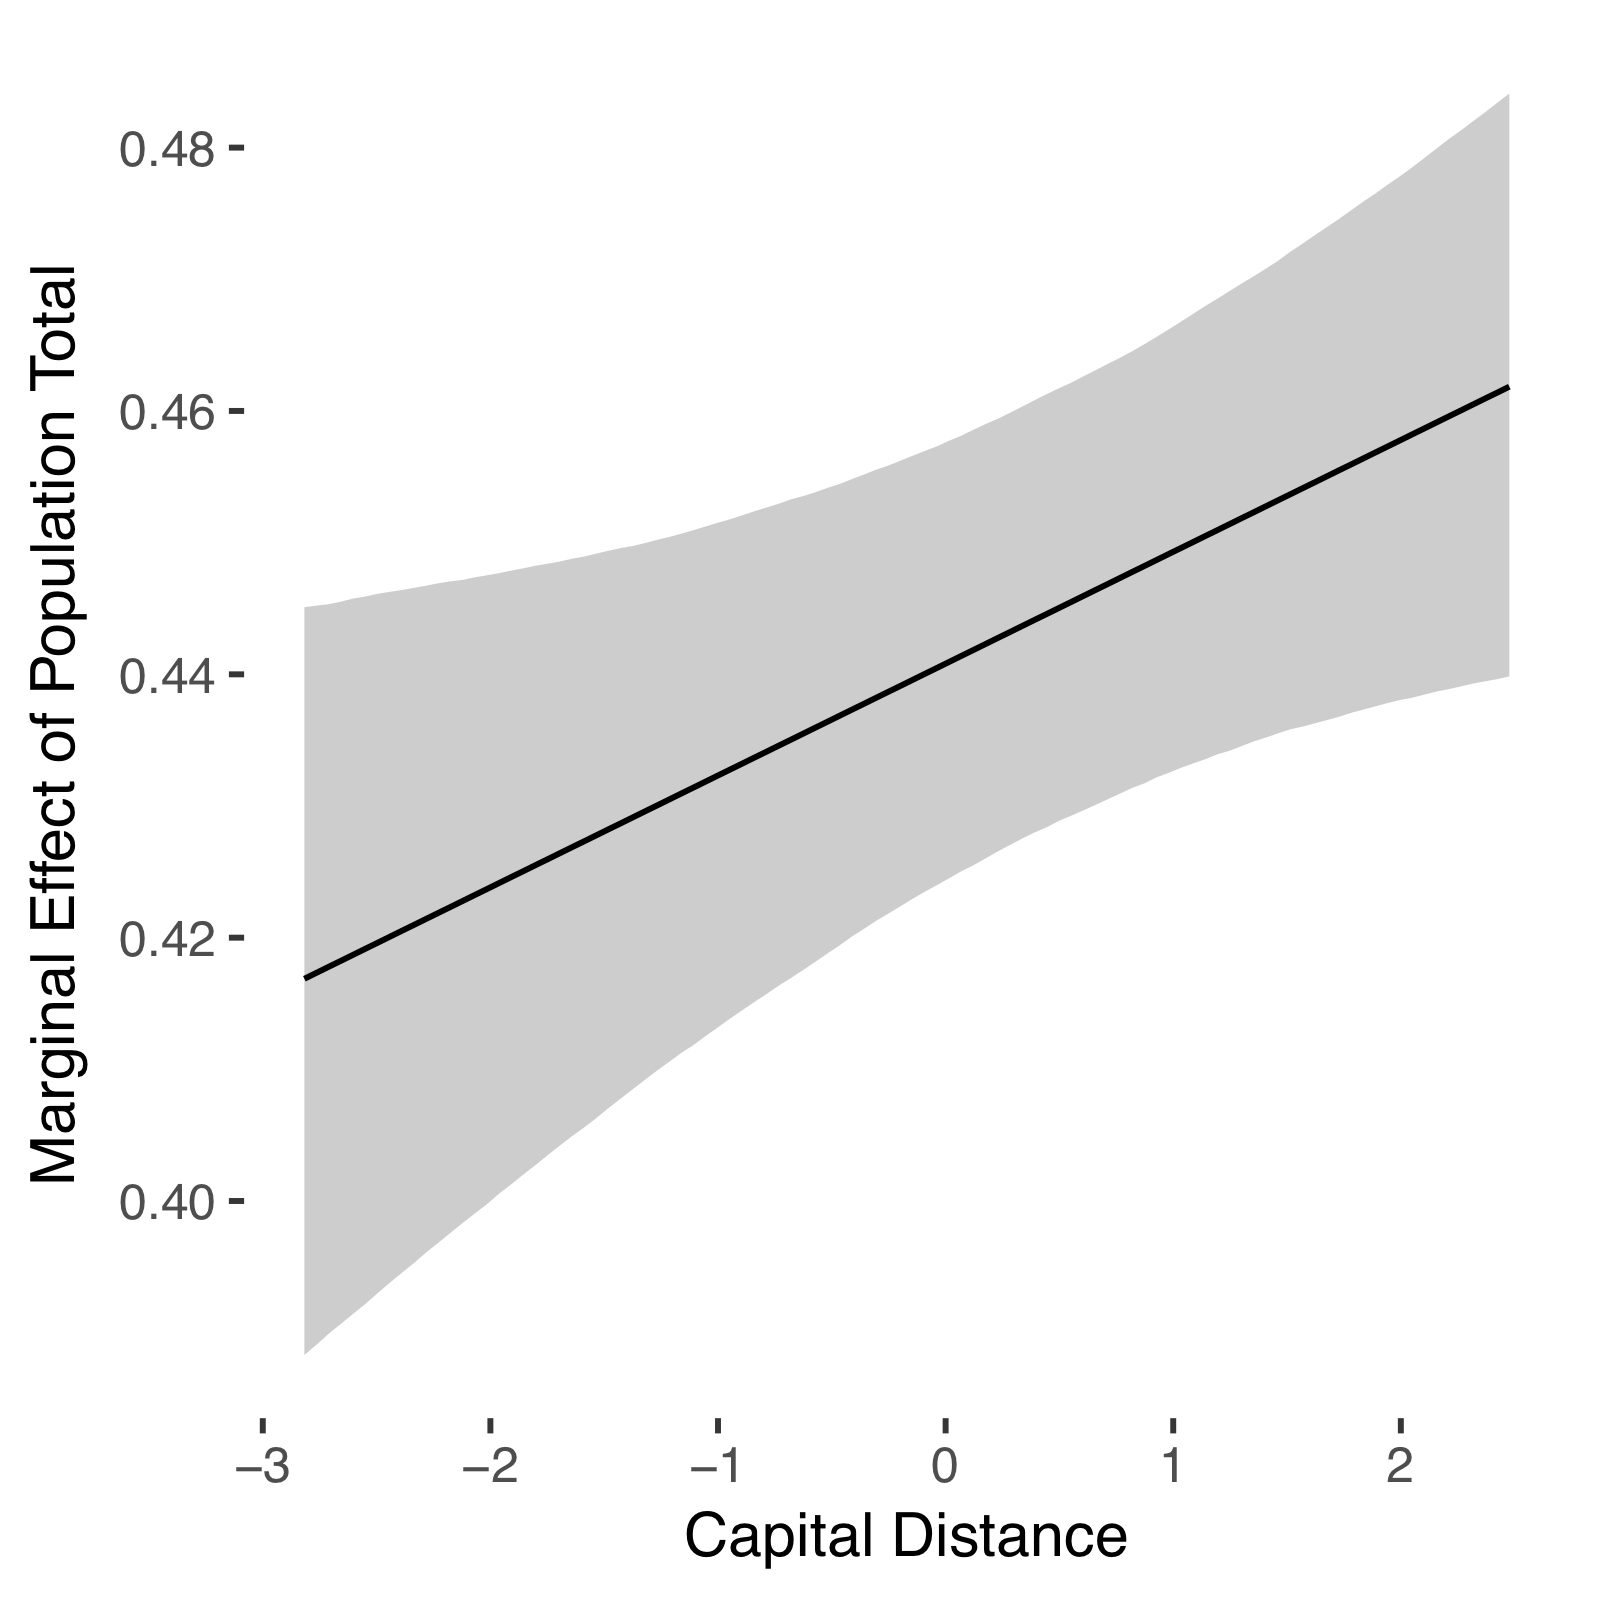 marginal effects plot generated by BayesPostEst